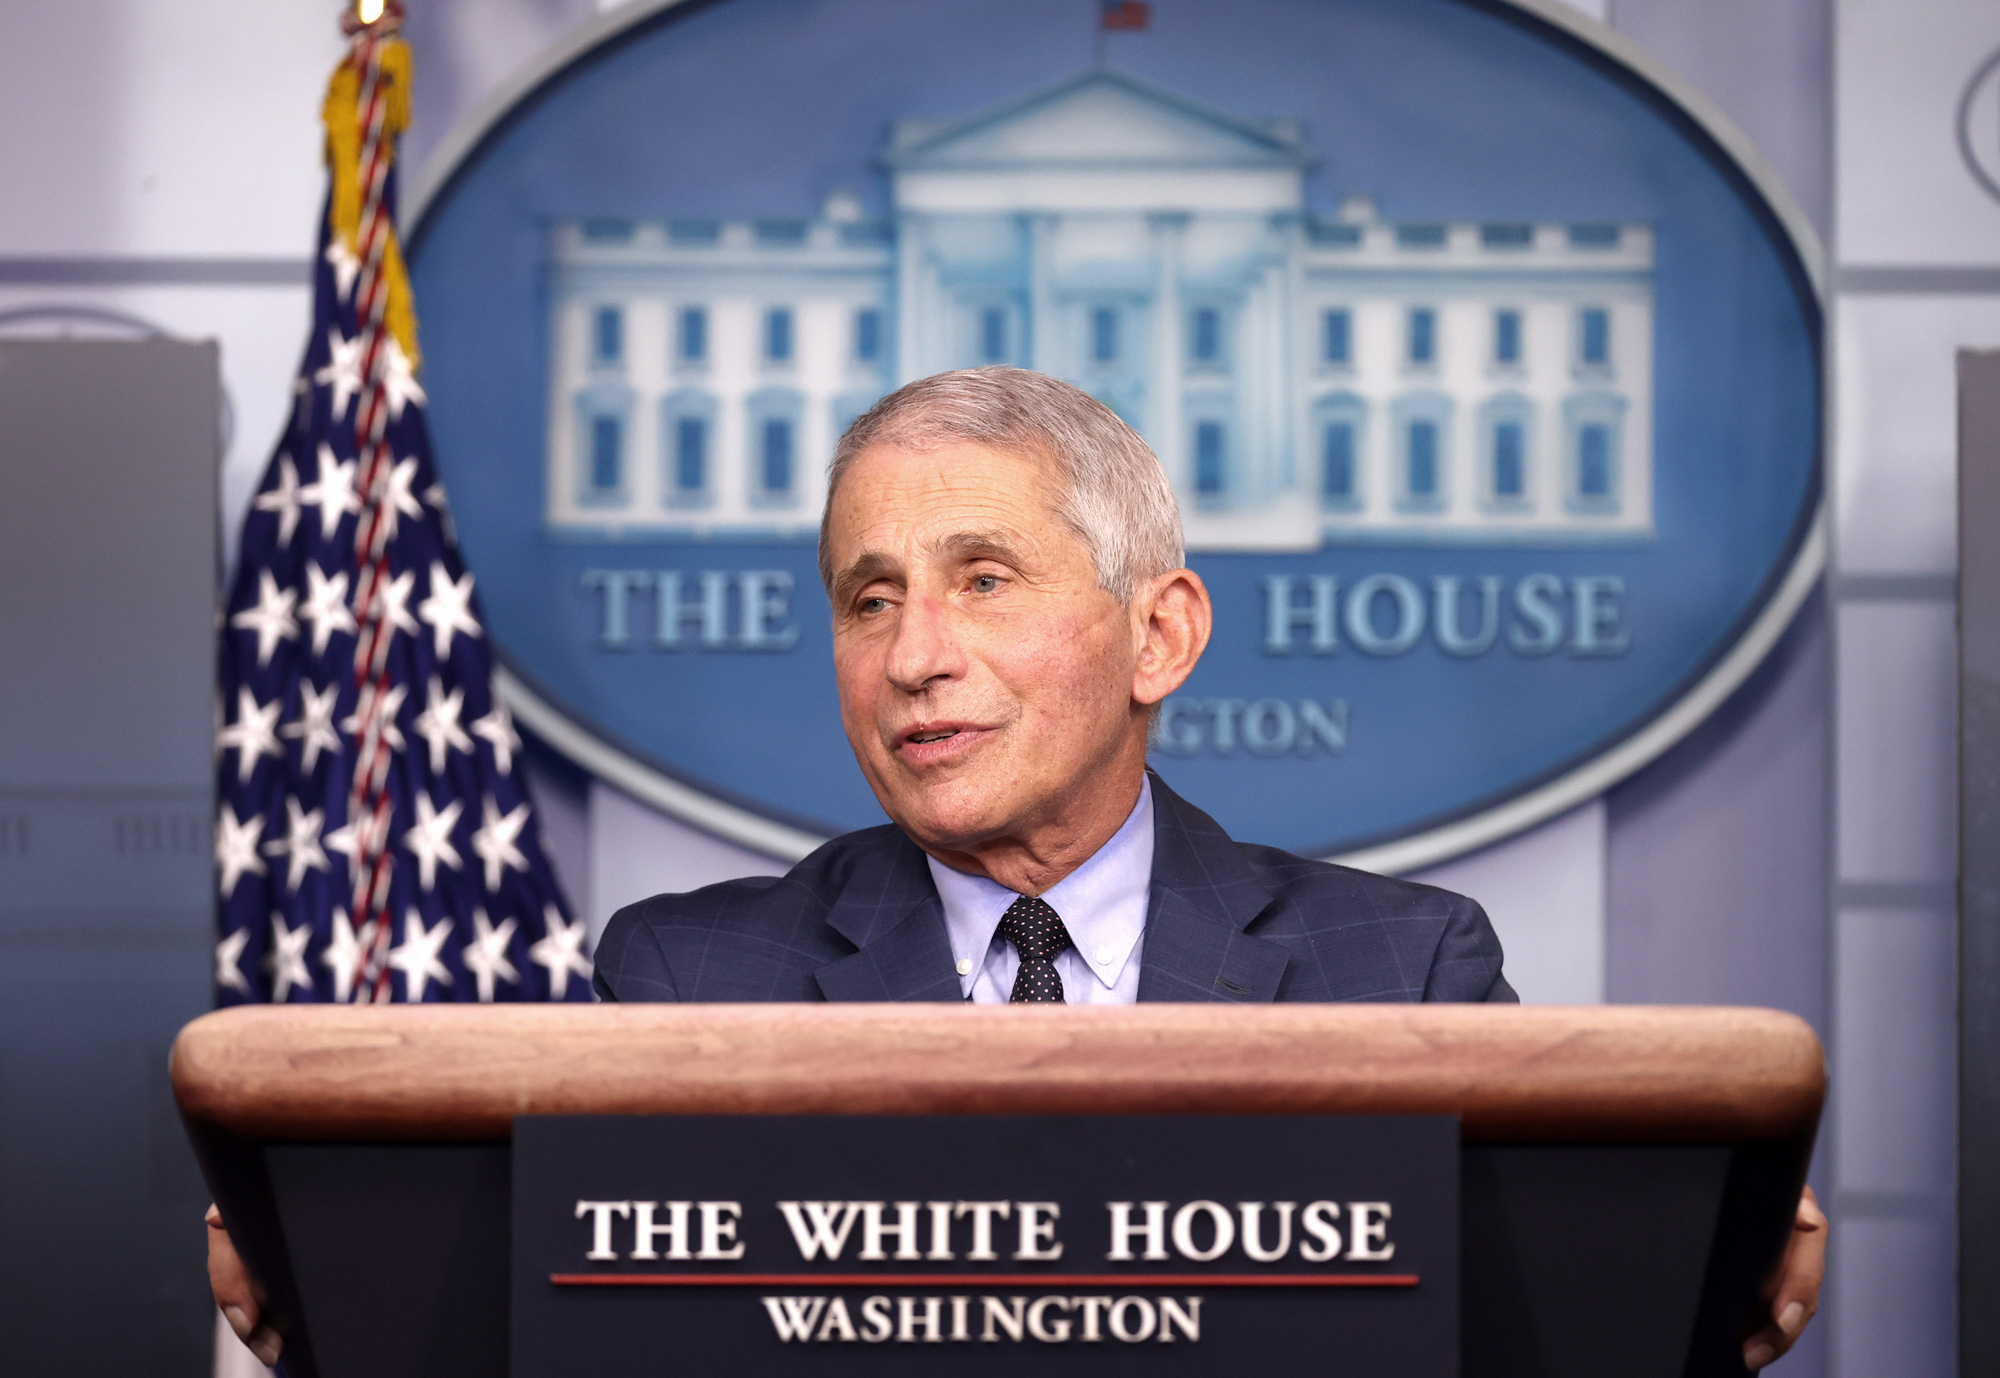 Dr. Anthony Fauci speaks during a White House Coronavirus Task Force press briefing in the James Brady Press Briefing Room at the White House on November 19 in Washington, DC.